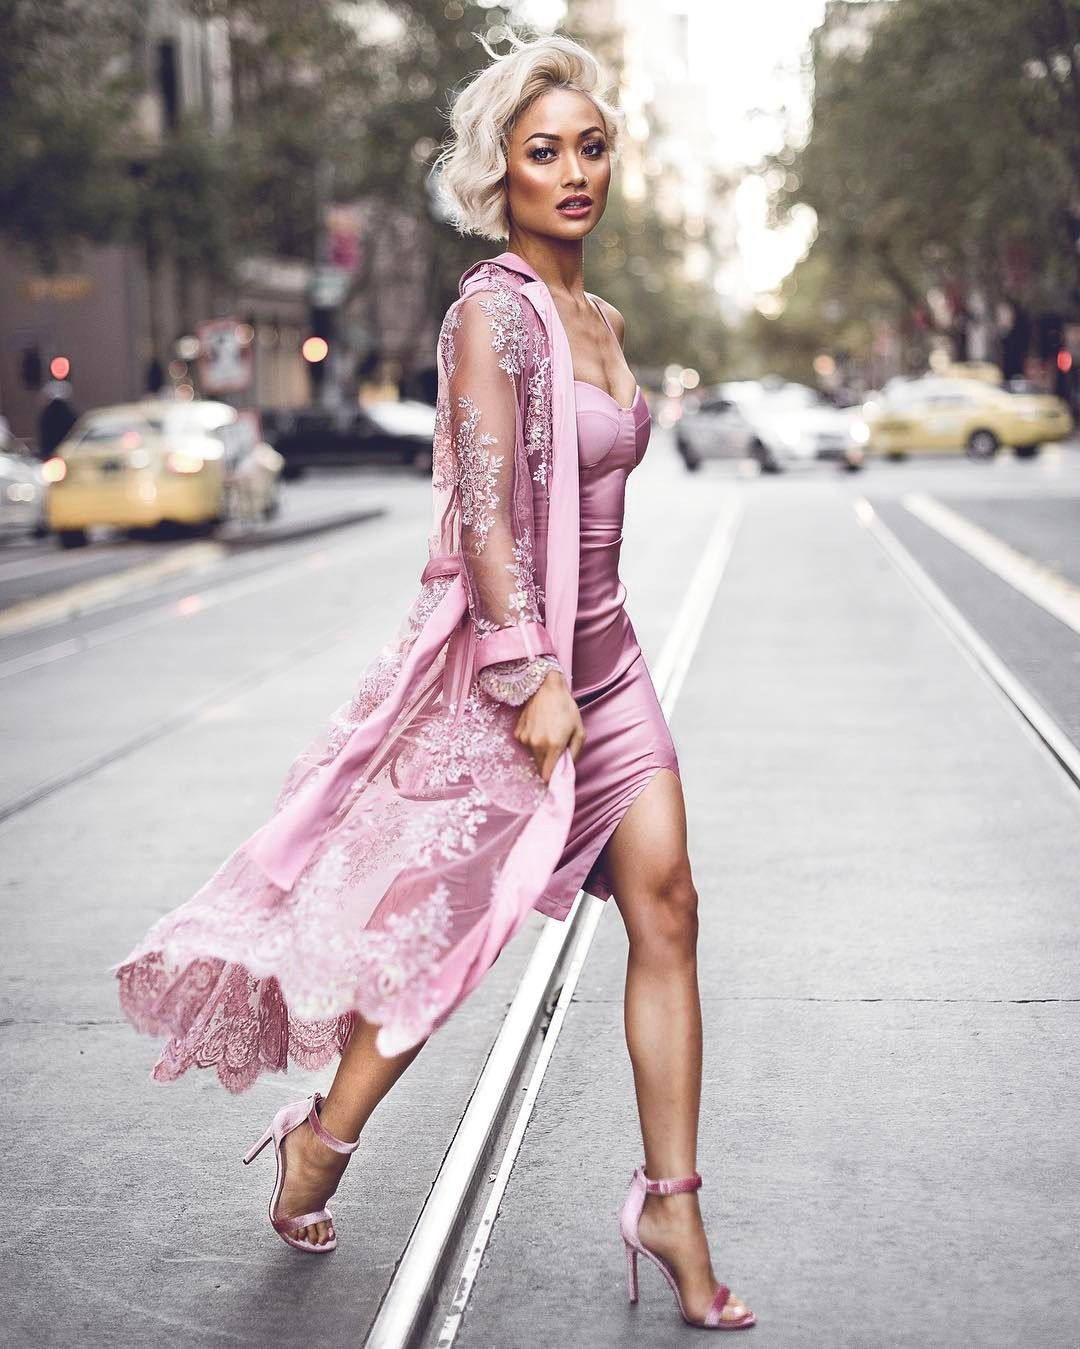 All Pink Everything: MICAH GIANNELI All Pink Everything... Dress & Duster From